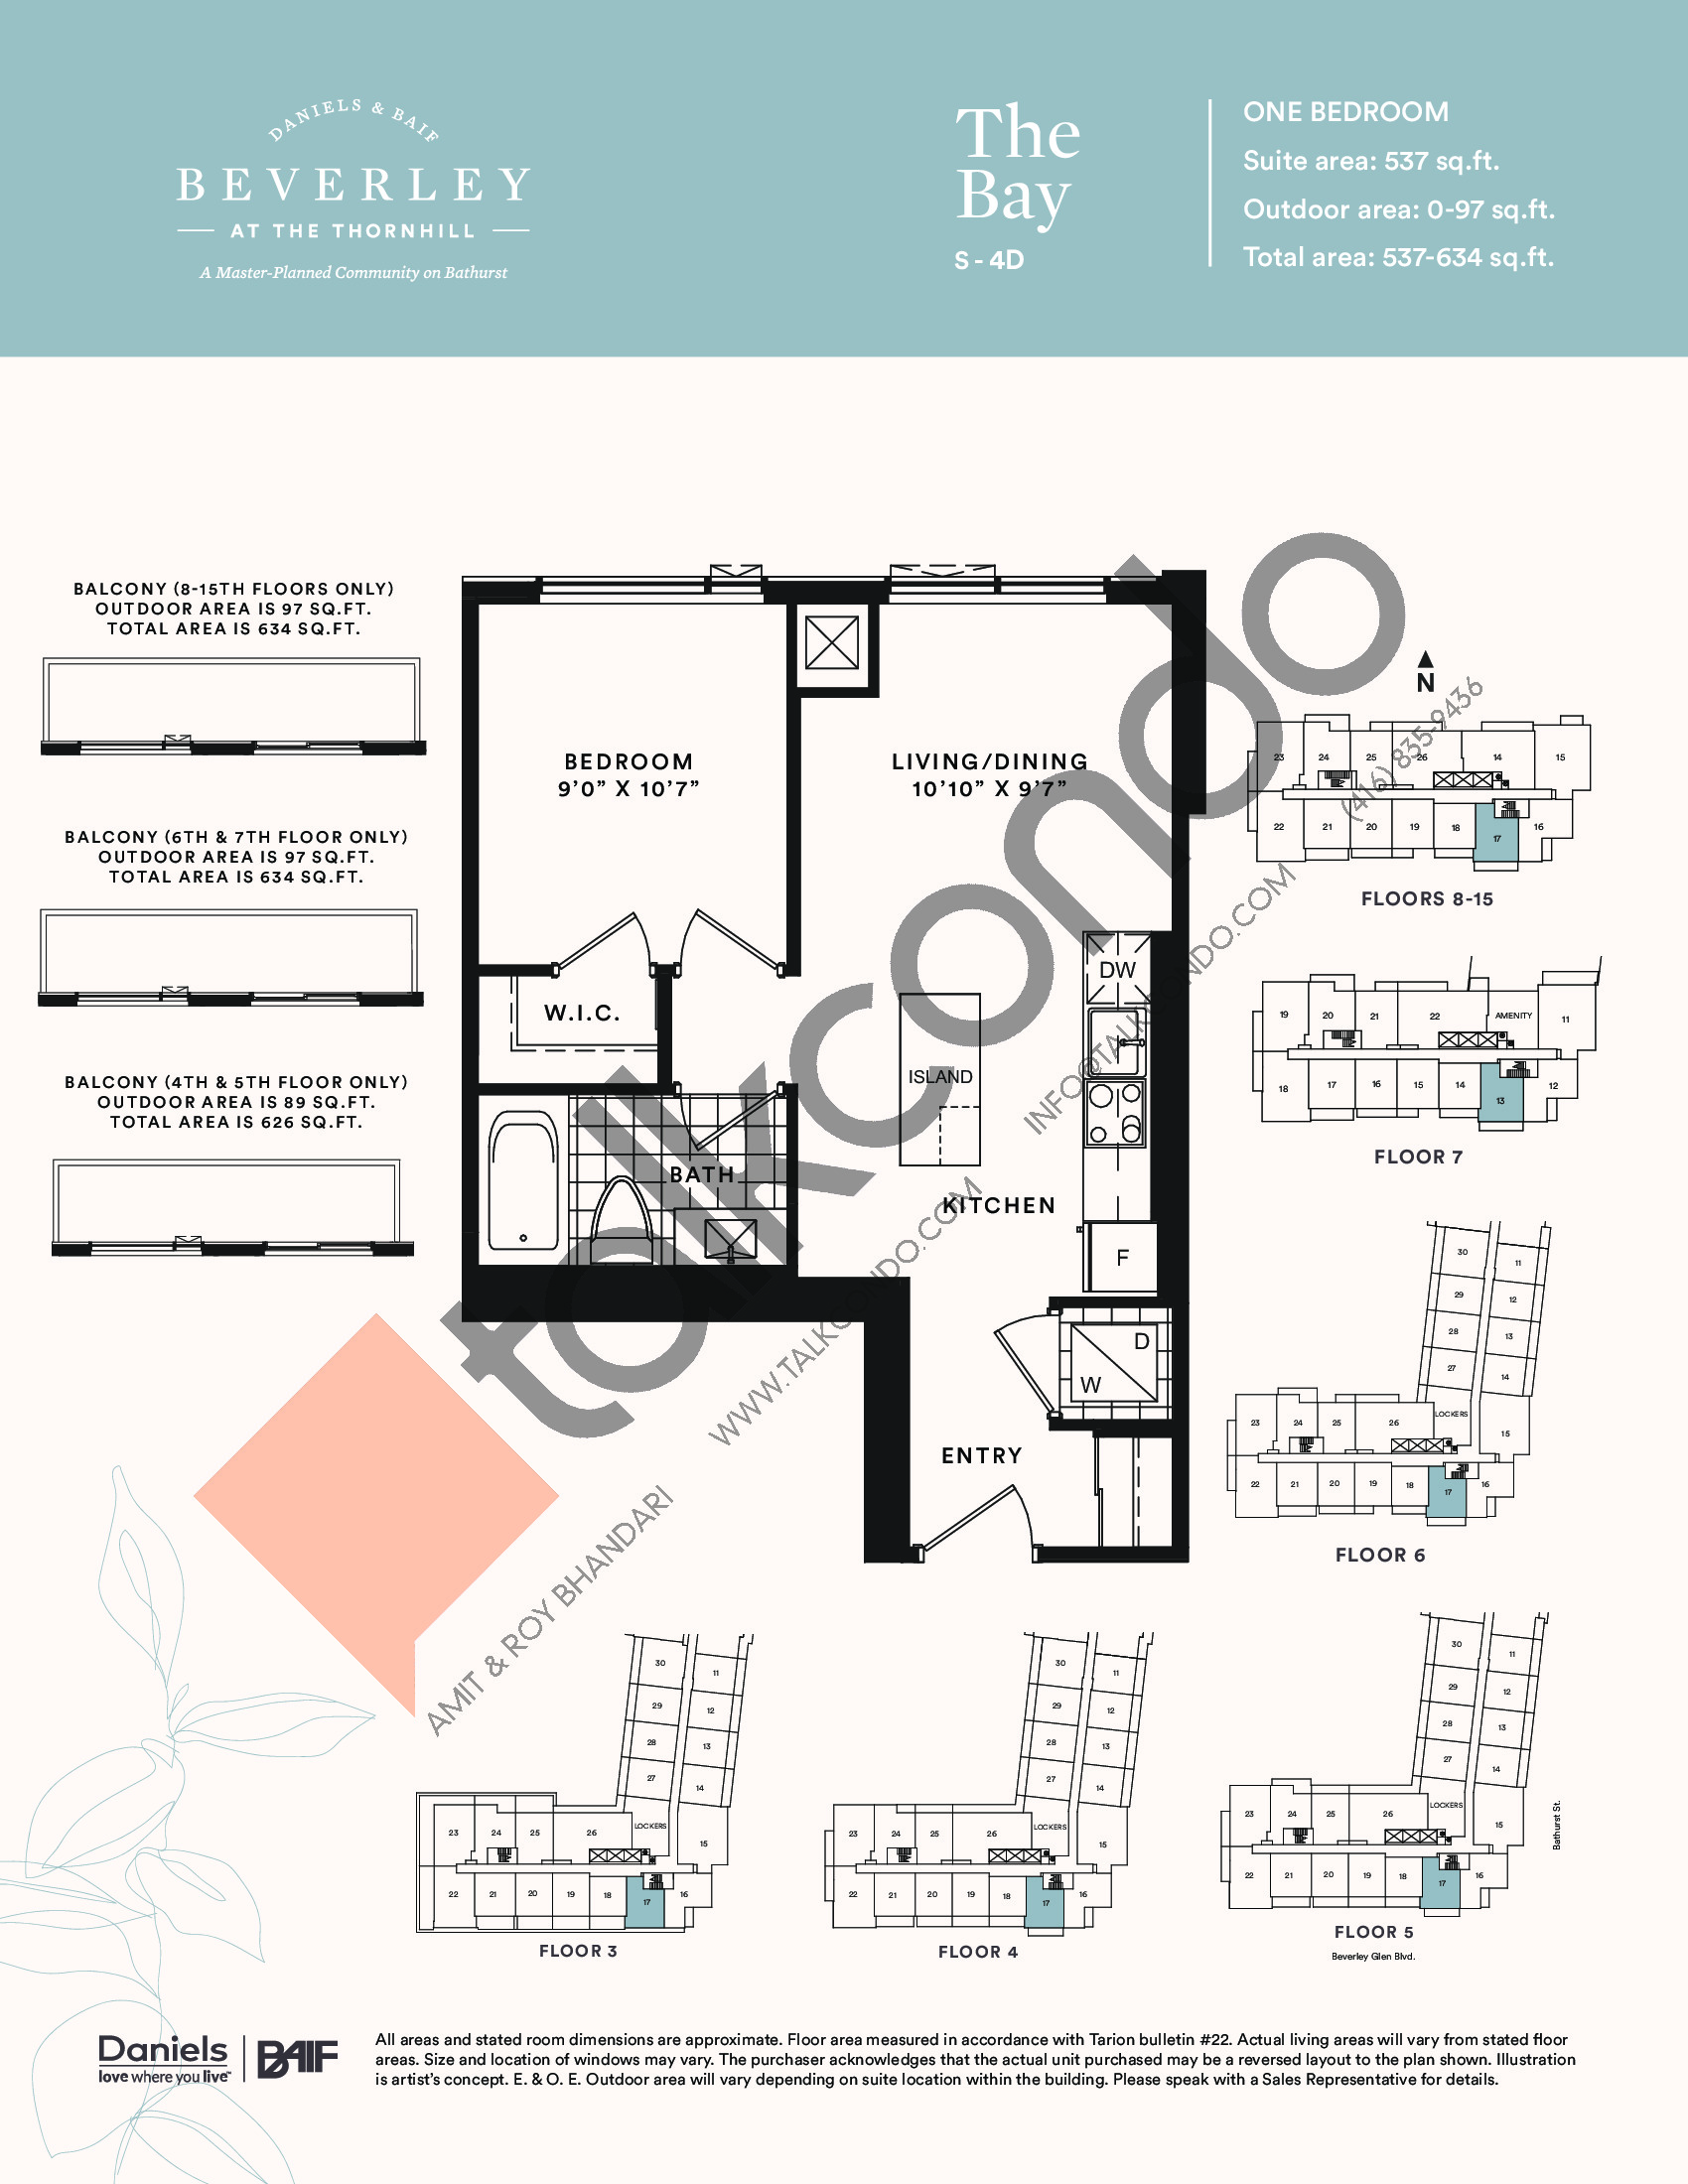 The Bay Floor Plan at The Beverley at the Thornhill Condos - 537 sq.ft